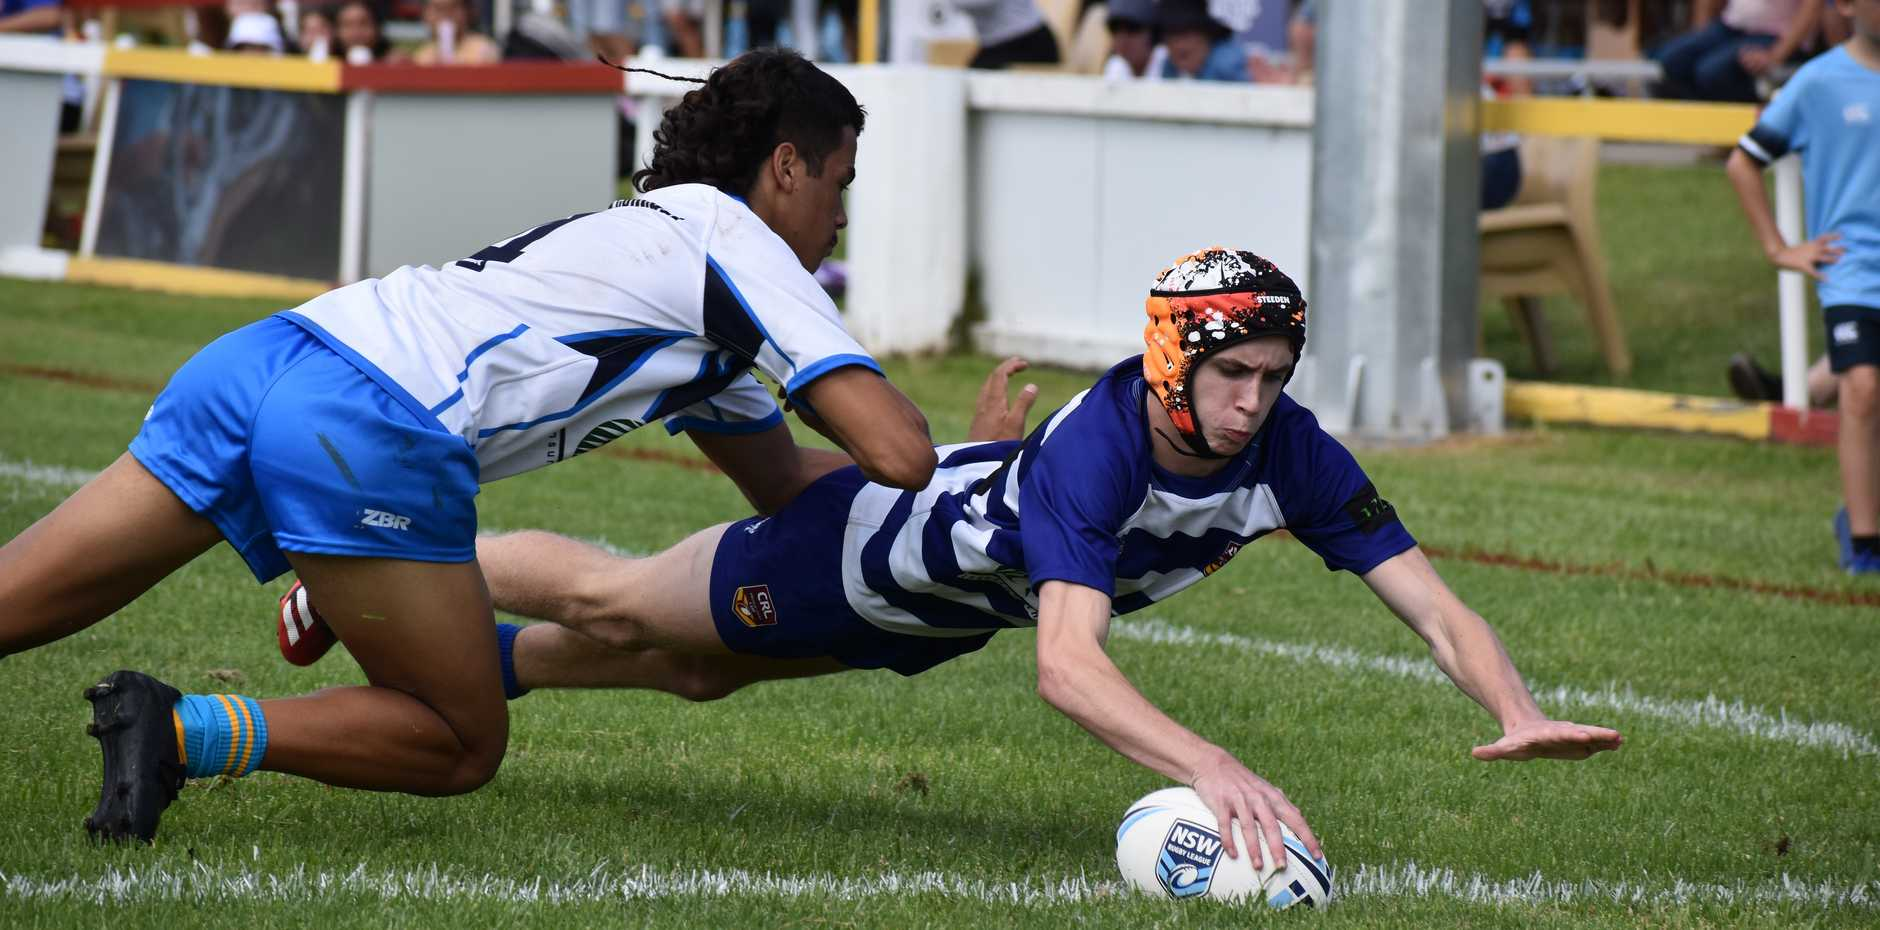 The North Coast Bulldogs and Northern Rivers Titans played a Country Championship match at Coffs Harbour's Geoff King Motors Oval in the Andrew Johns Under 16s Cup on Saturday, March 14, 2020. The Titans held on to win 20-18.